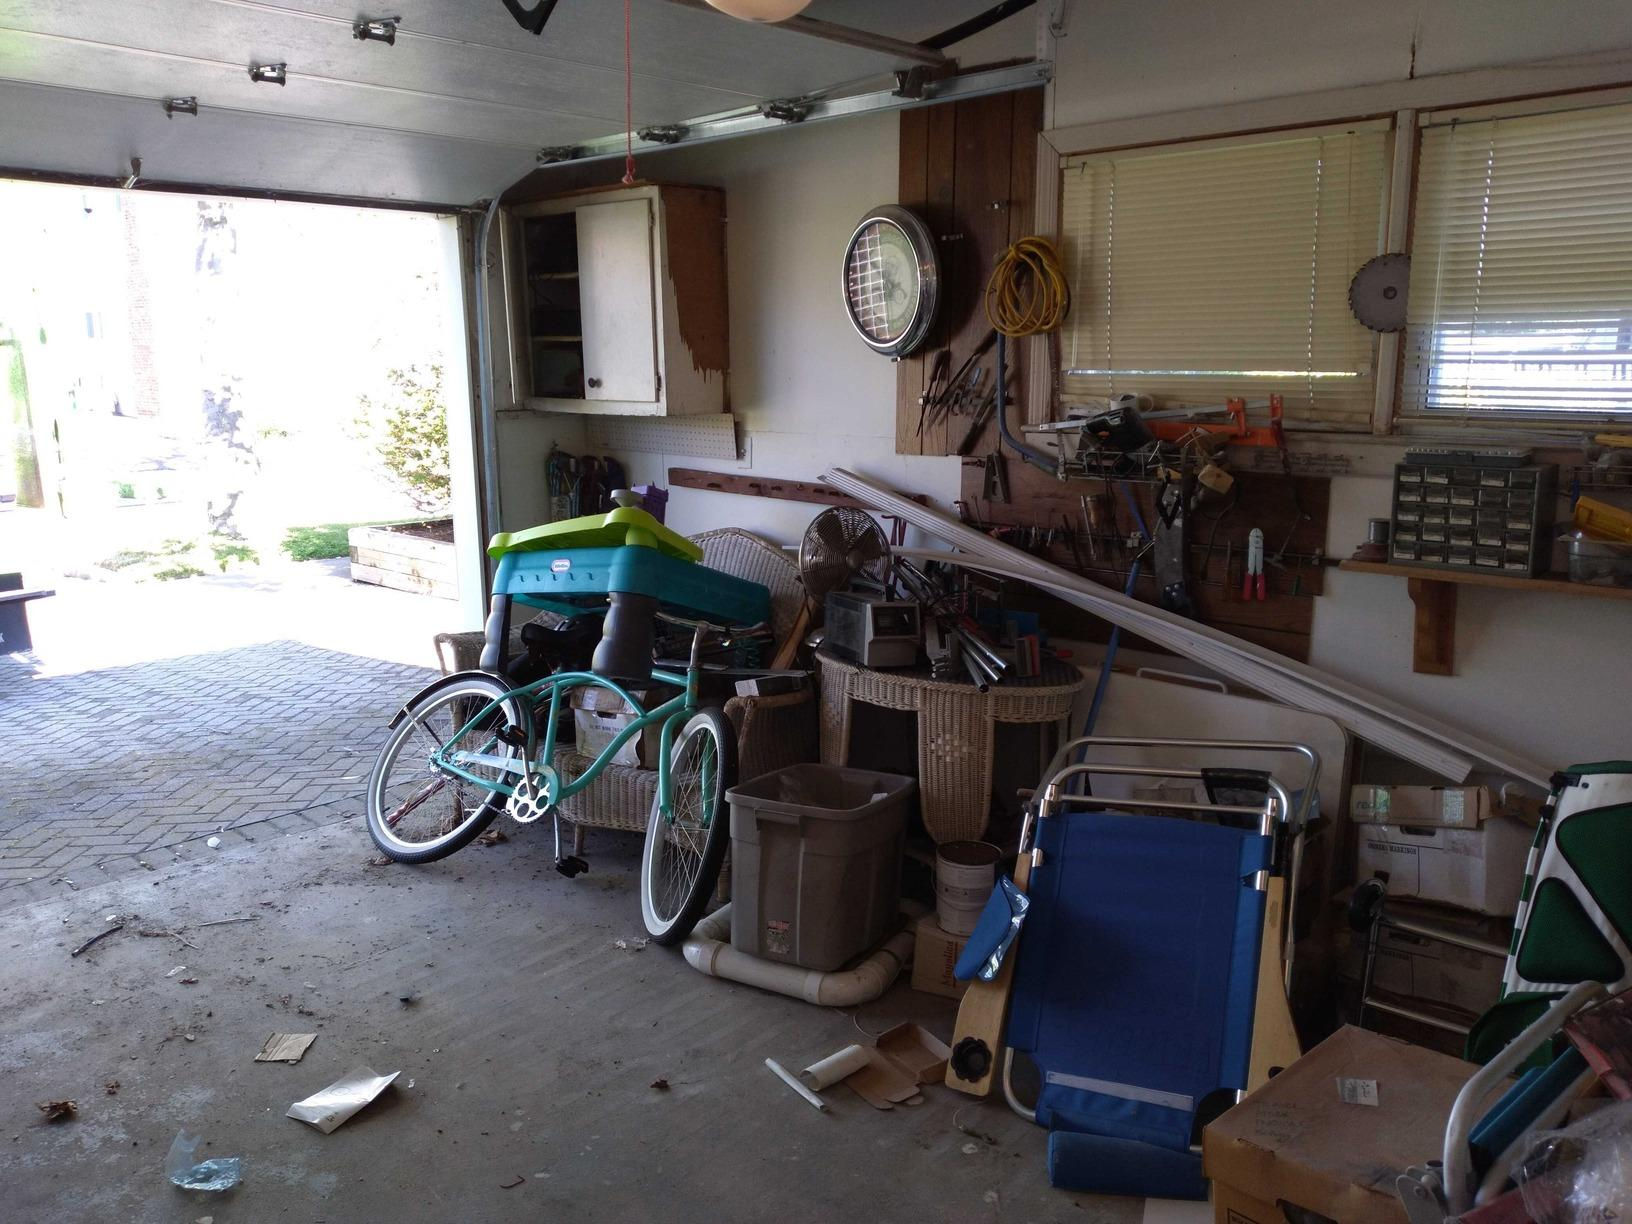 Garage Decluttering Service in Atlantic Beach, NY - After Photo